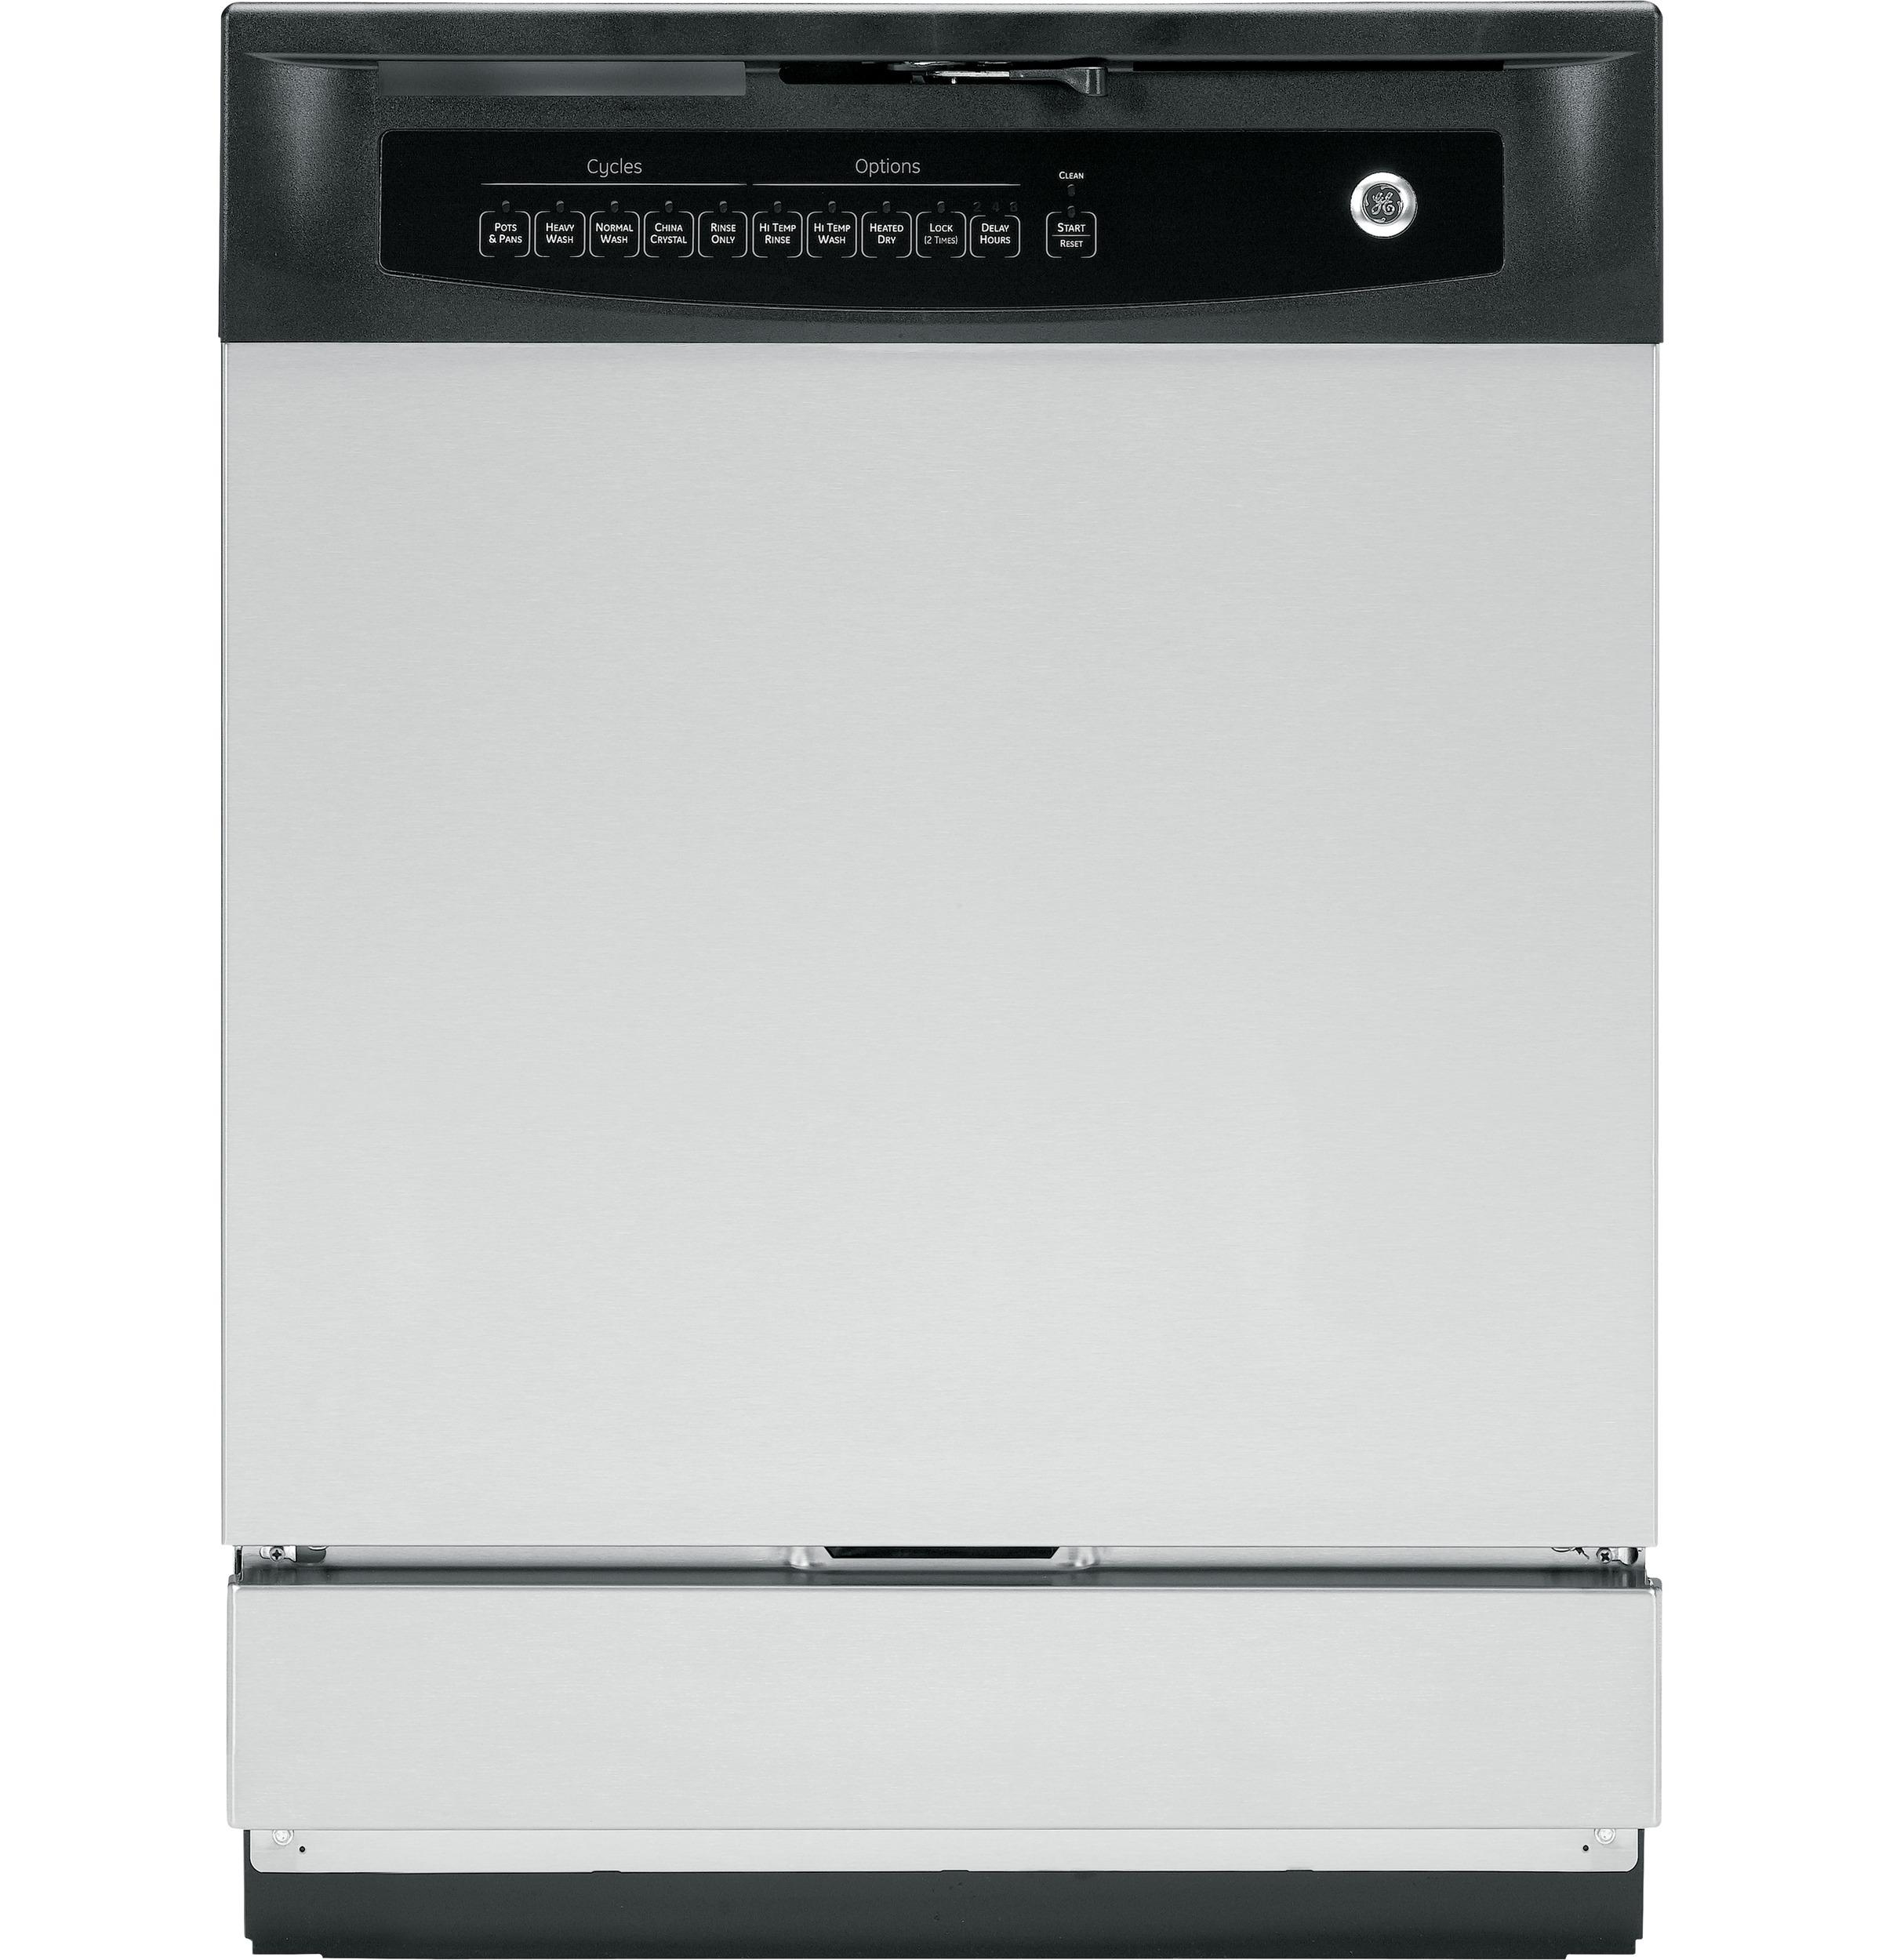 GE(R) Built-In Dishwasher